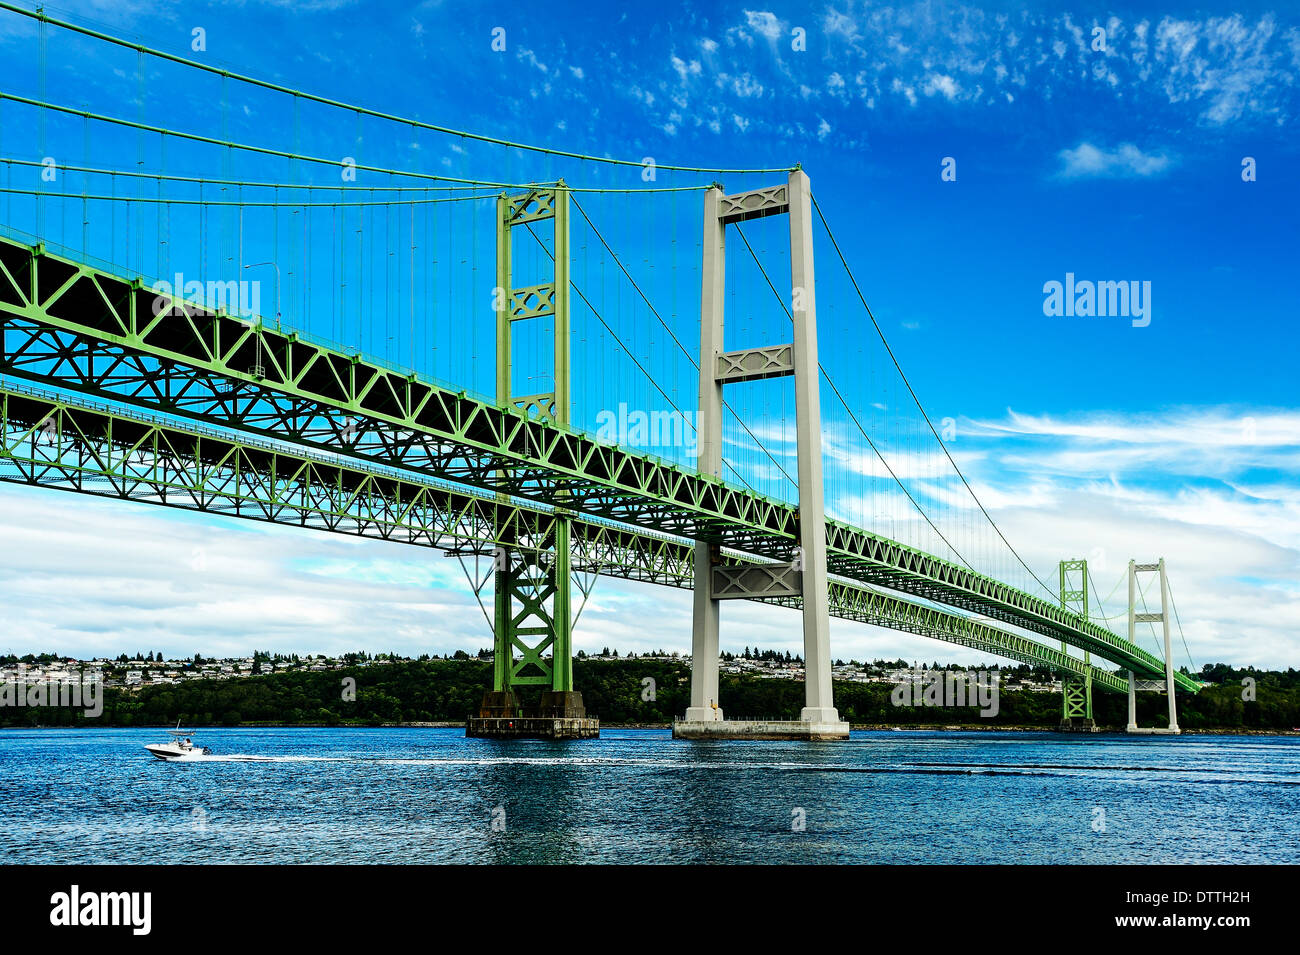 Narrows Bridge, Tacoma, Washington, United States - Stock Image